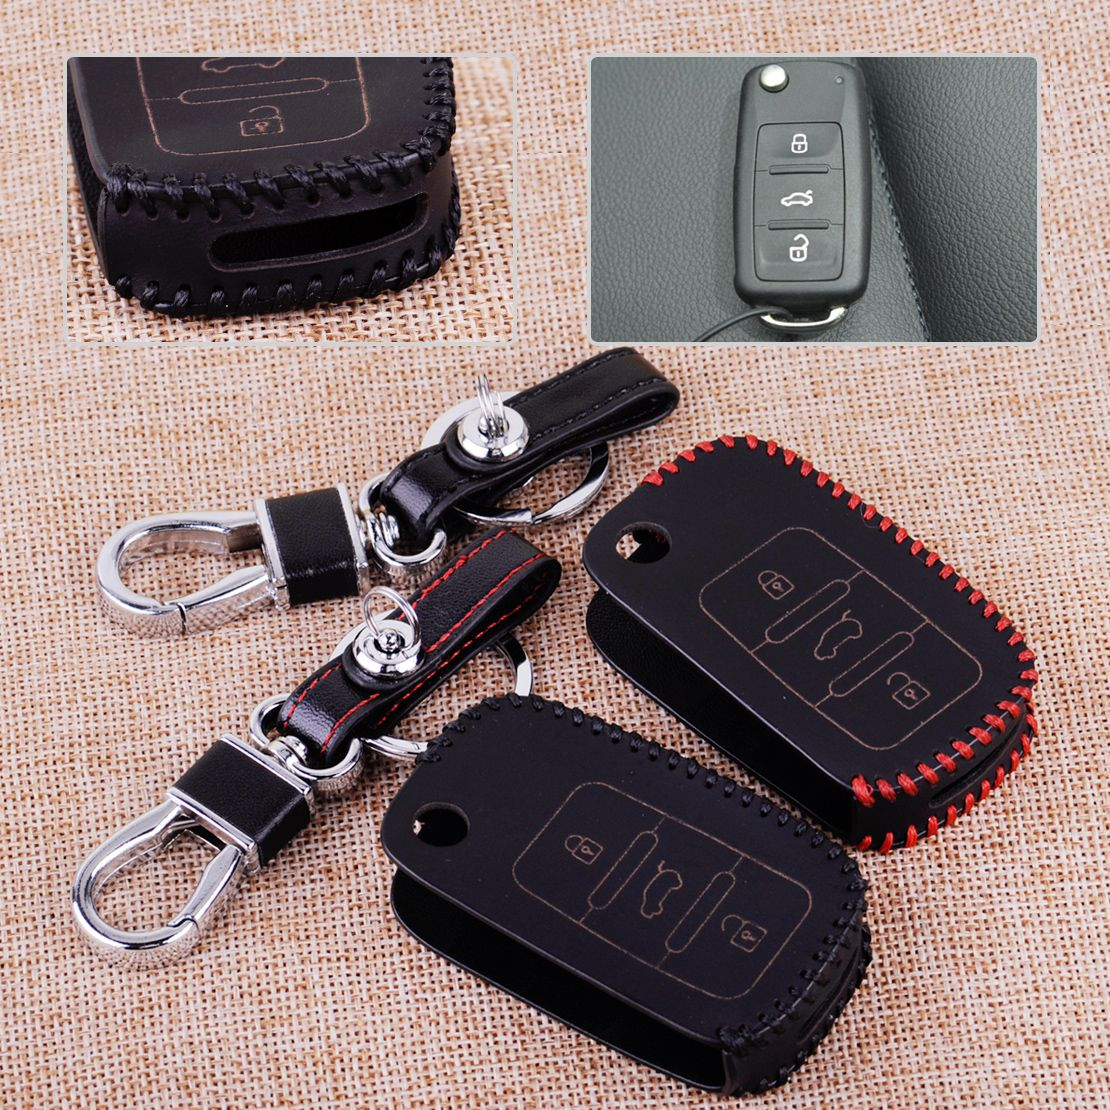 CITALL 3 Buttons PU Leather Car Remote Key Case Cover Keychain Fit for VW Golf Jetta Passat Polo Bora Touareg Sagitar